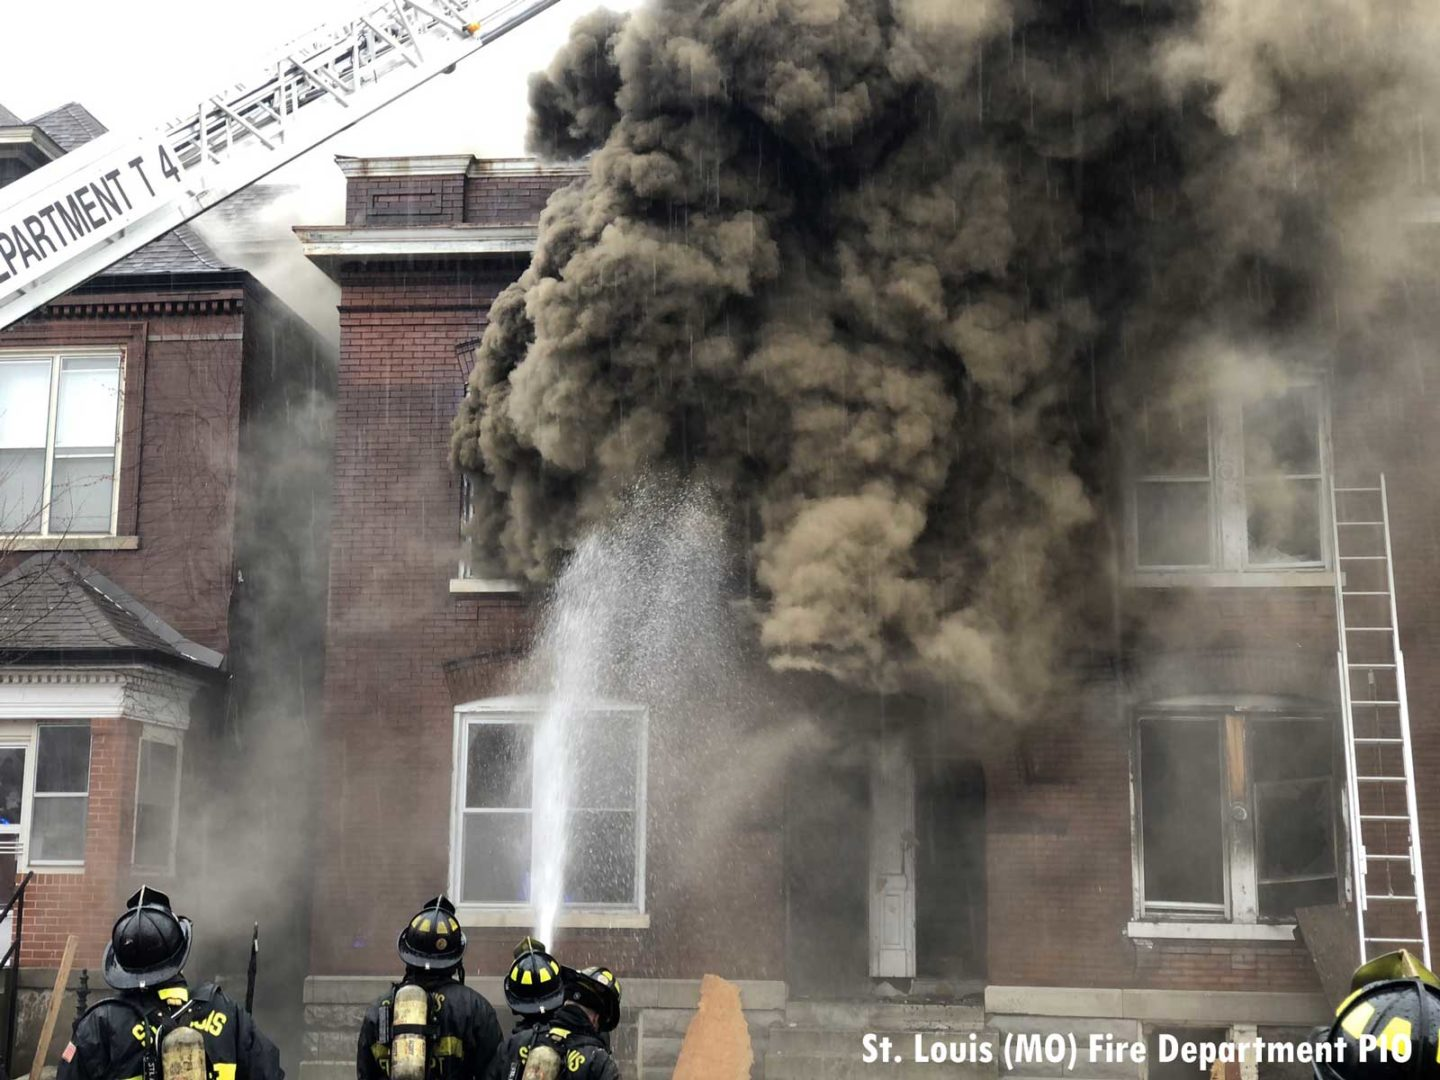 Firefighters observe smoke pouring from vacant building